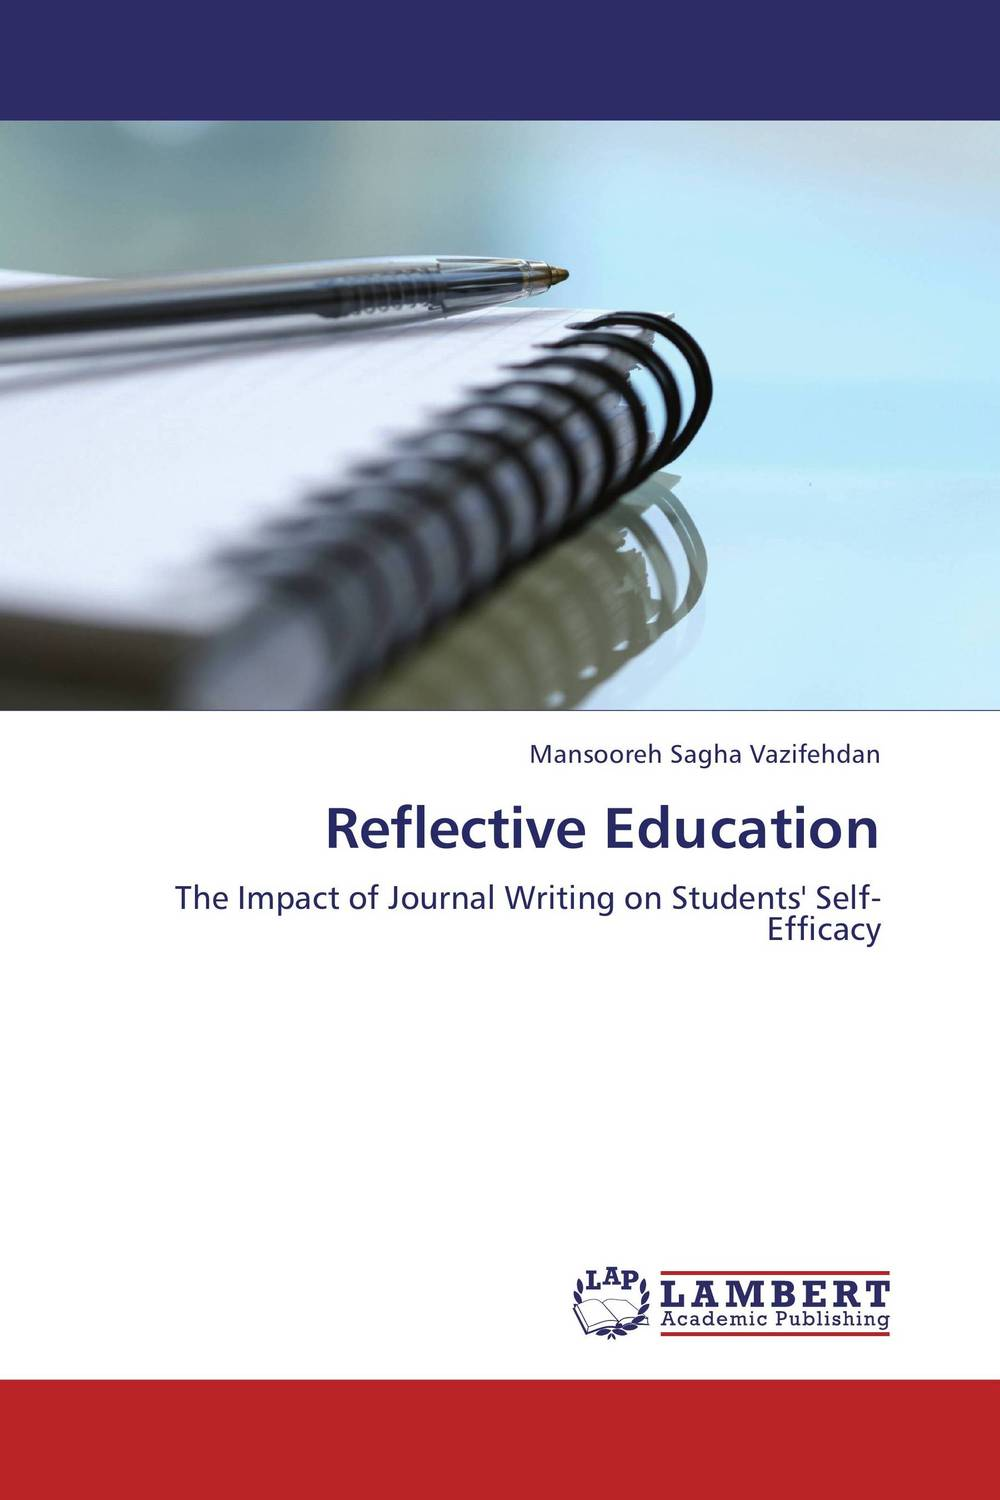 Reflective Education